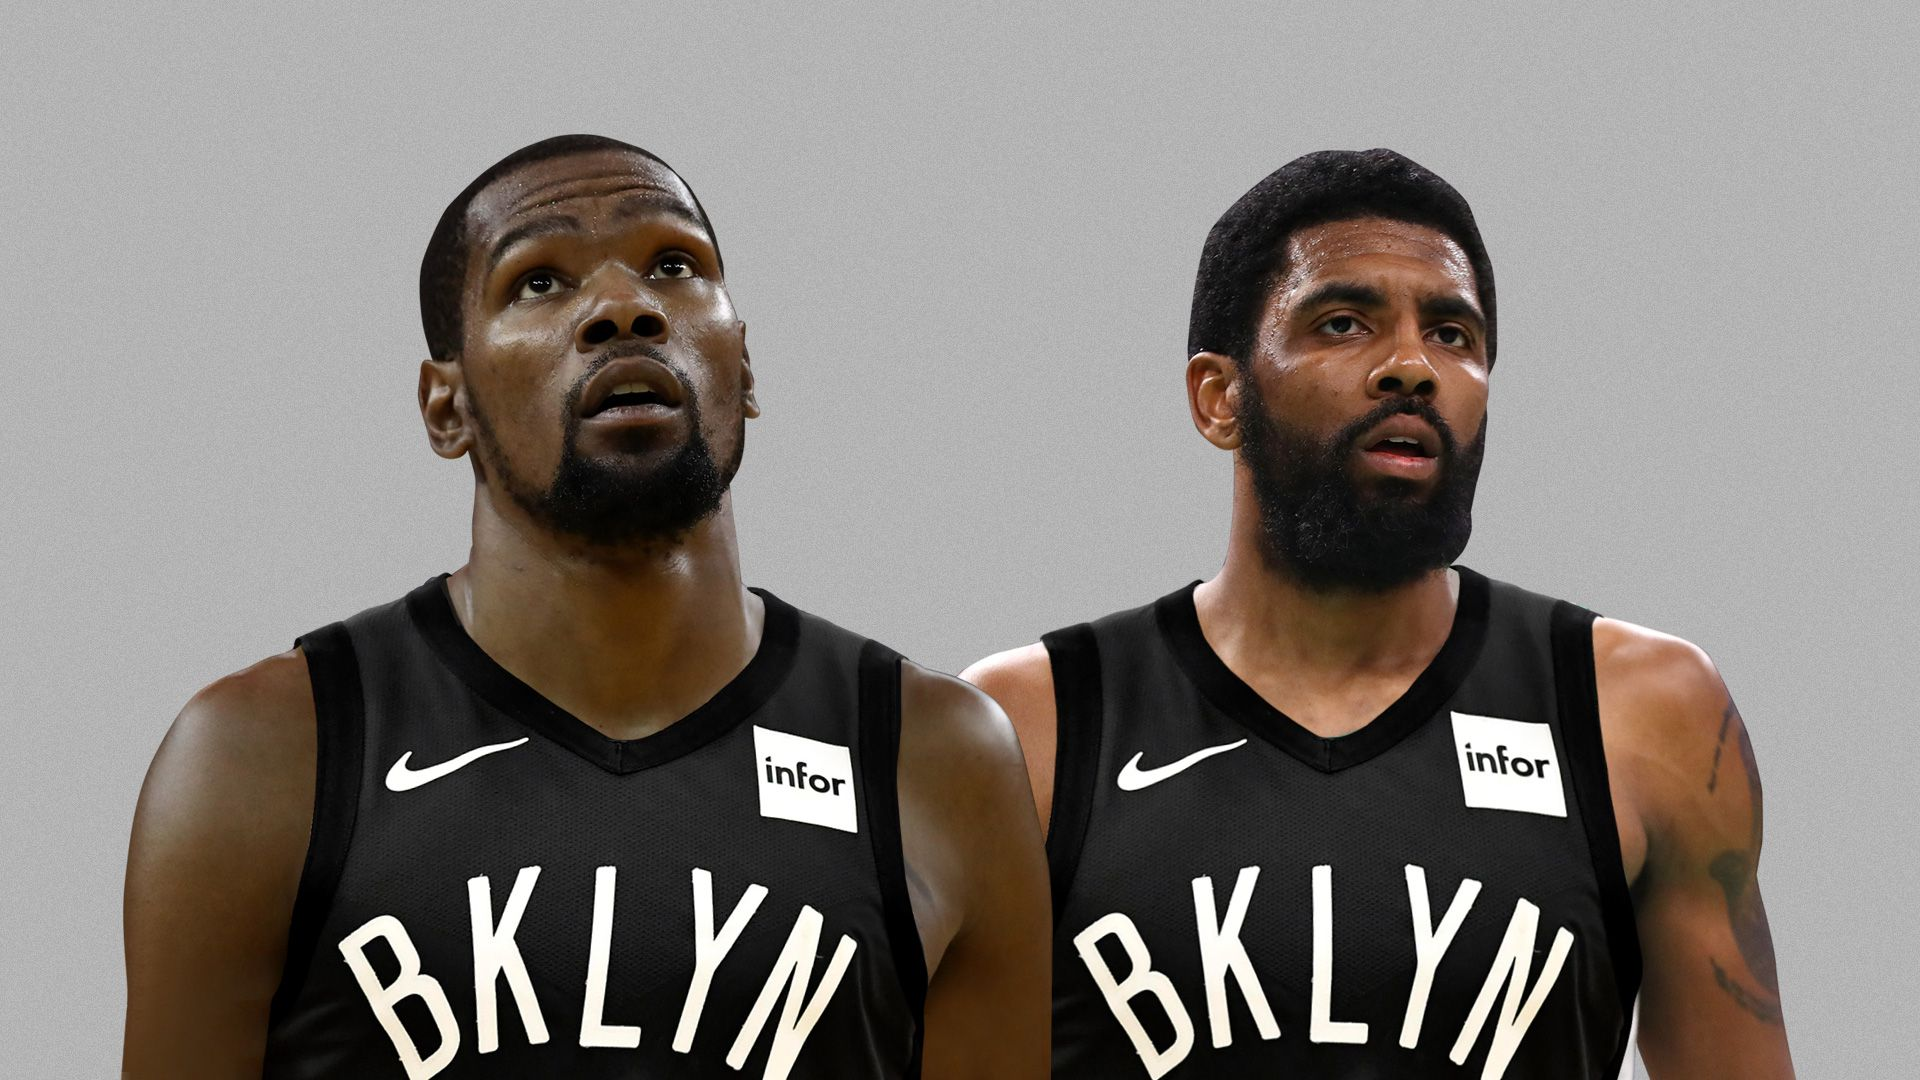 Kyrie and KD in Nets jerseys